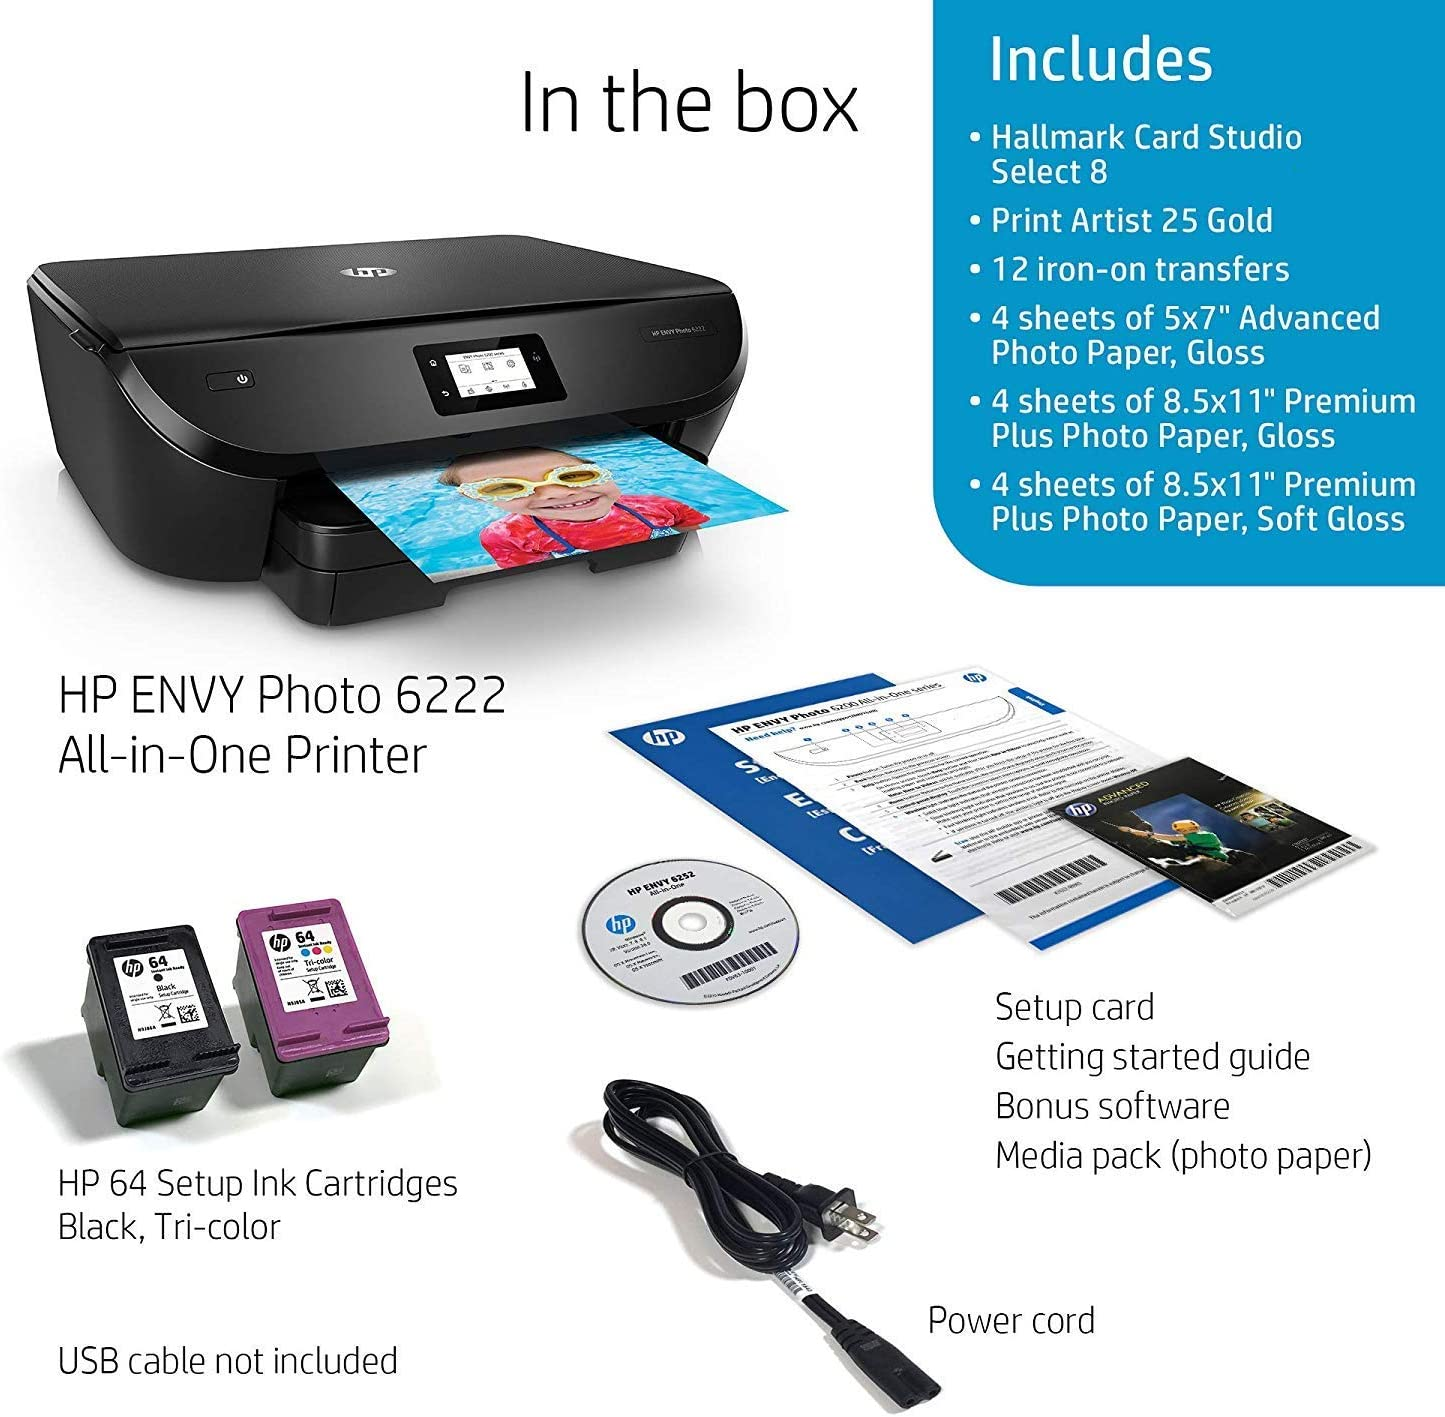 Amazon.com: Impresora fotográfica HP ENVY Photo 6255 todo en ...